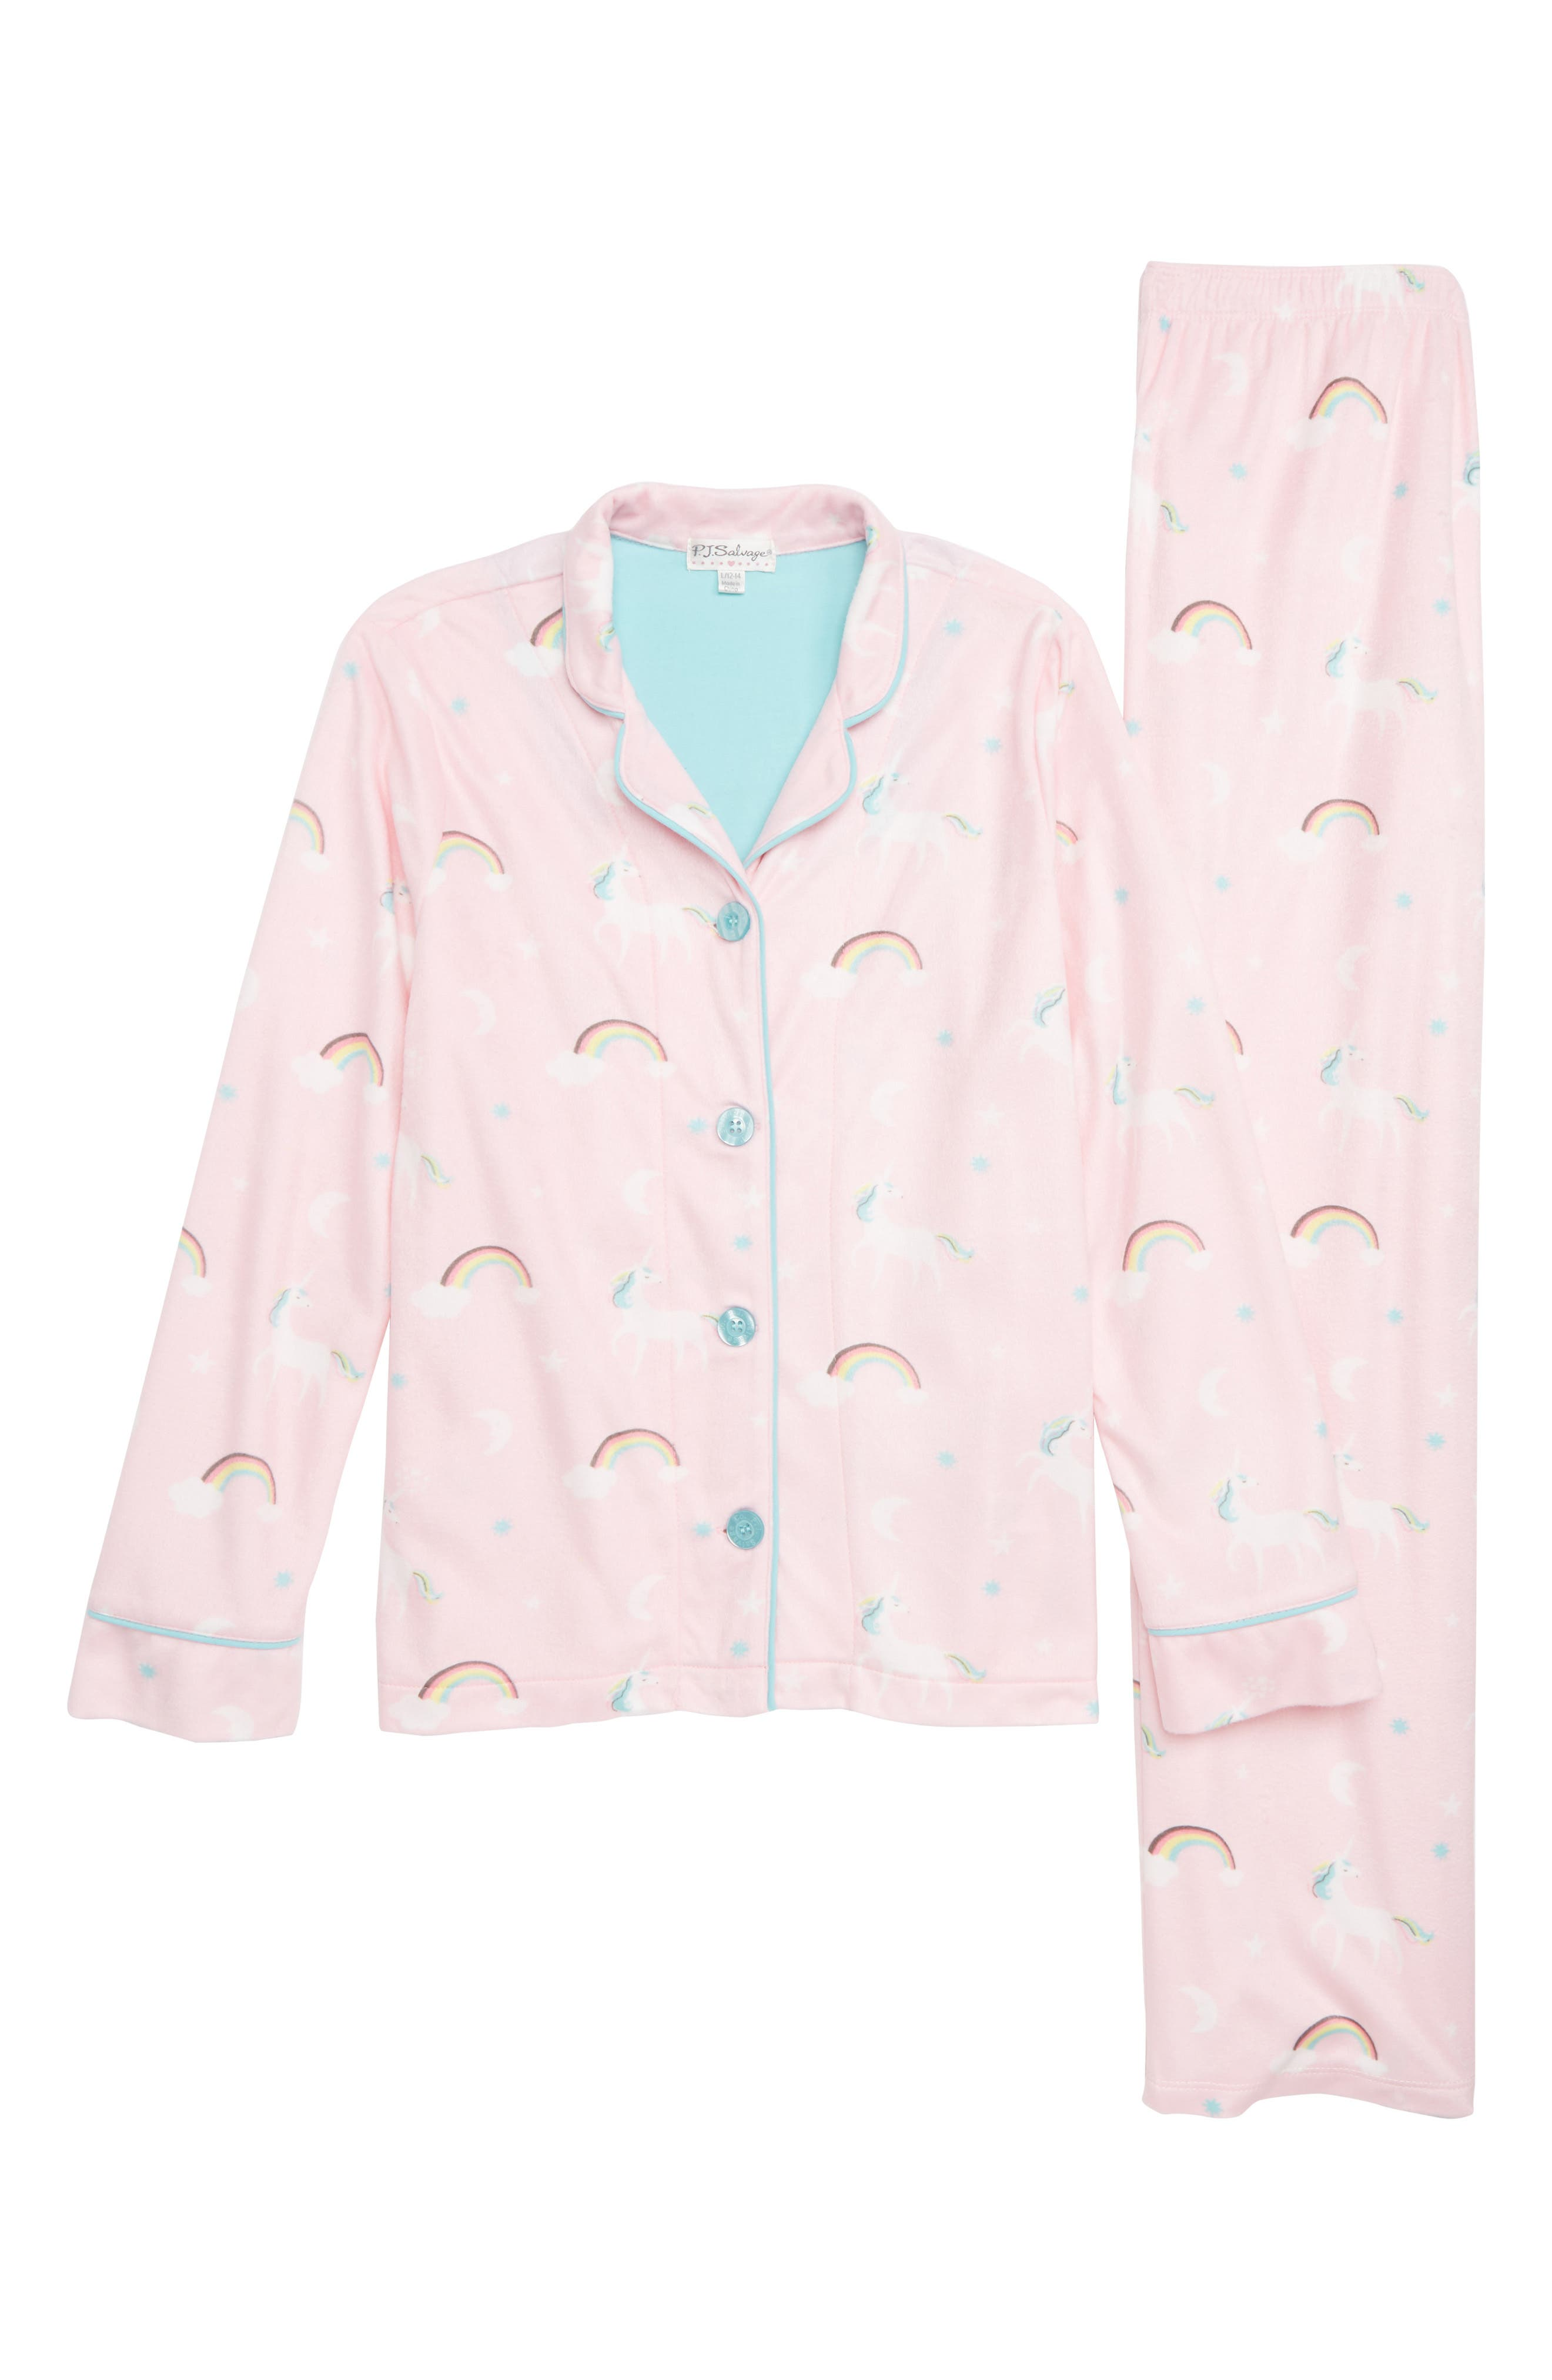 One of a Kind Pajamas,                         Main,                         color, PINK